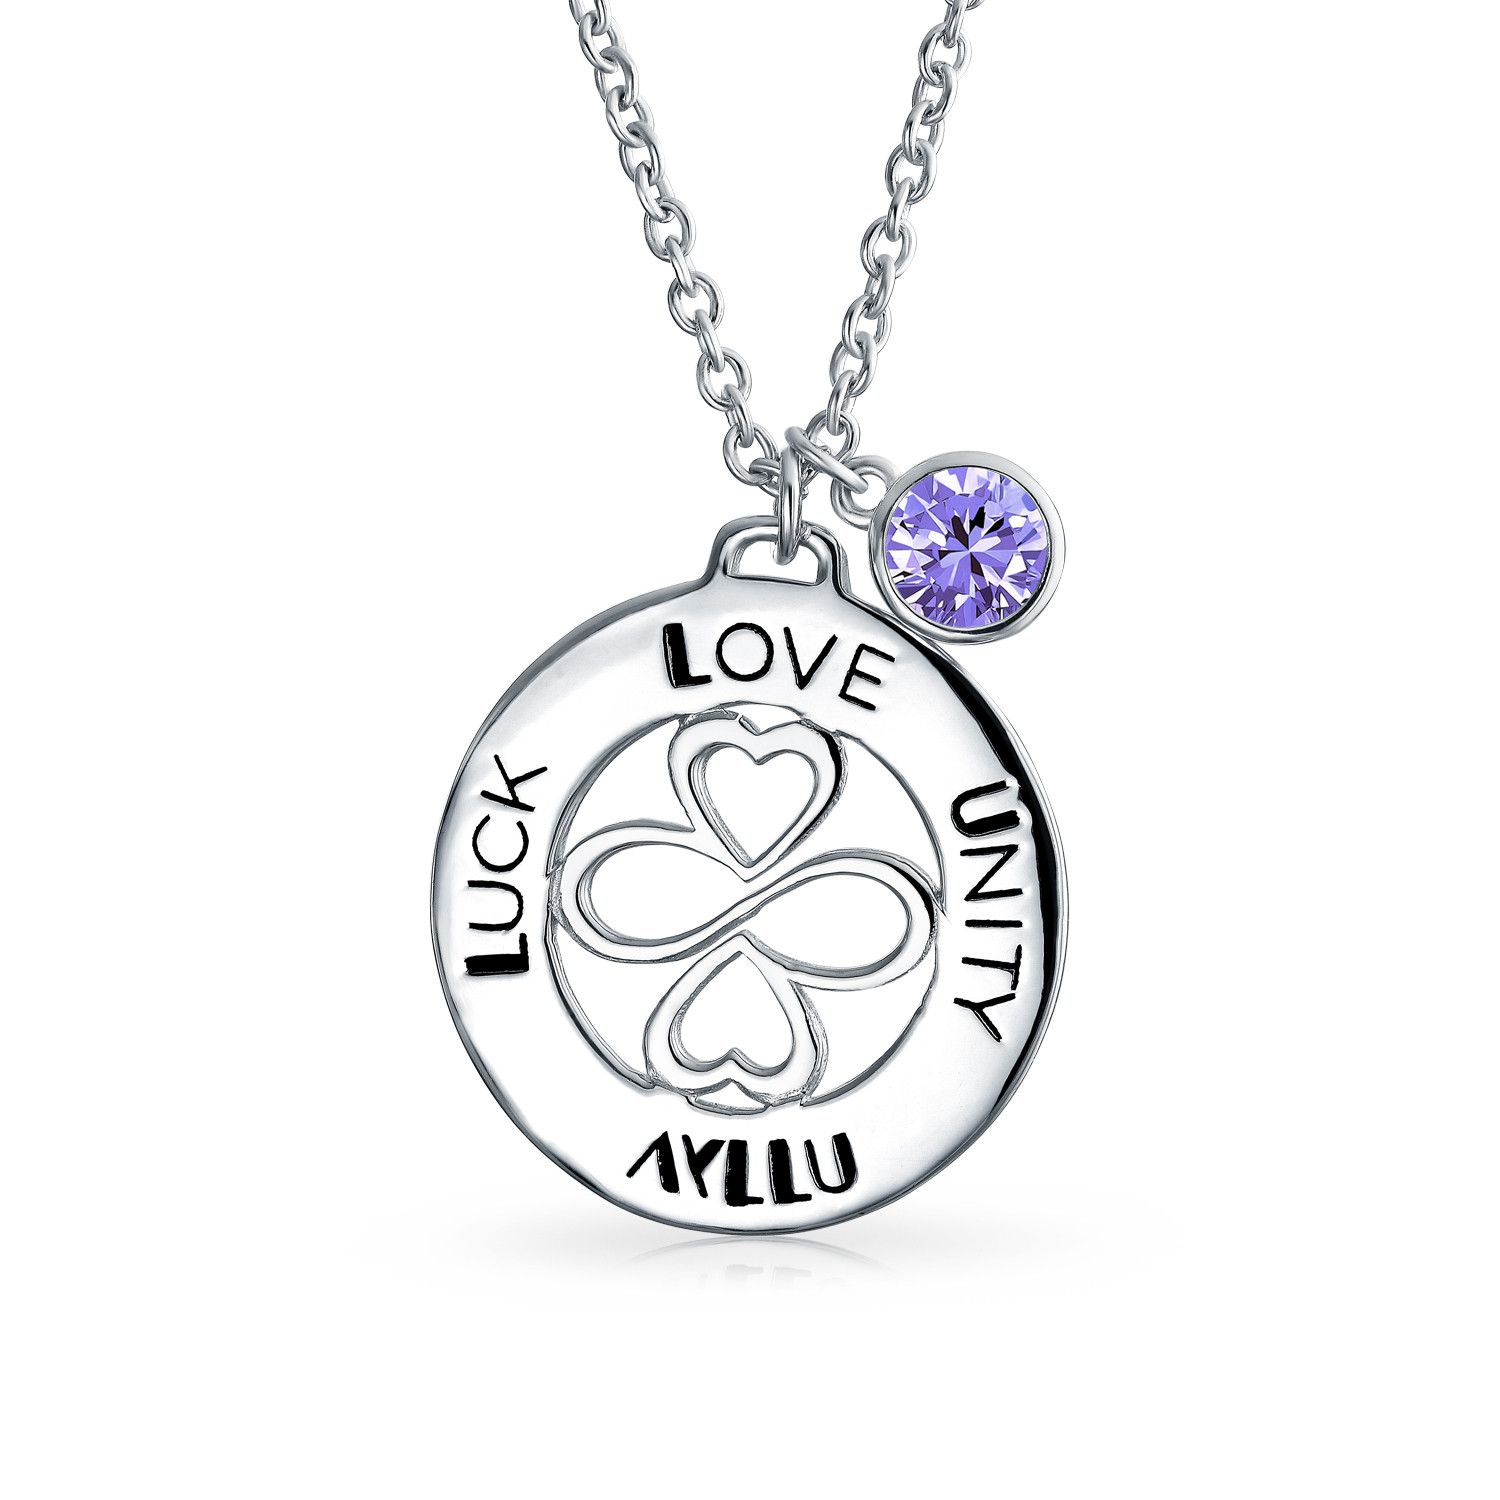 Ayllu Symbol Inspirational Round Disc Bff Pendant Necklace For Women Pertaining To Most Up To Date Shimmering Knot Locket Element Necklaces (View 13 of 25)